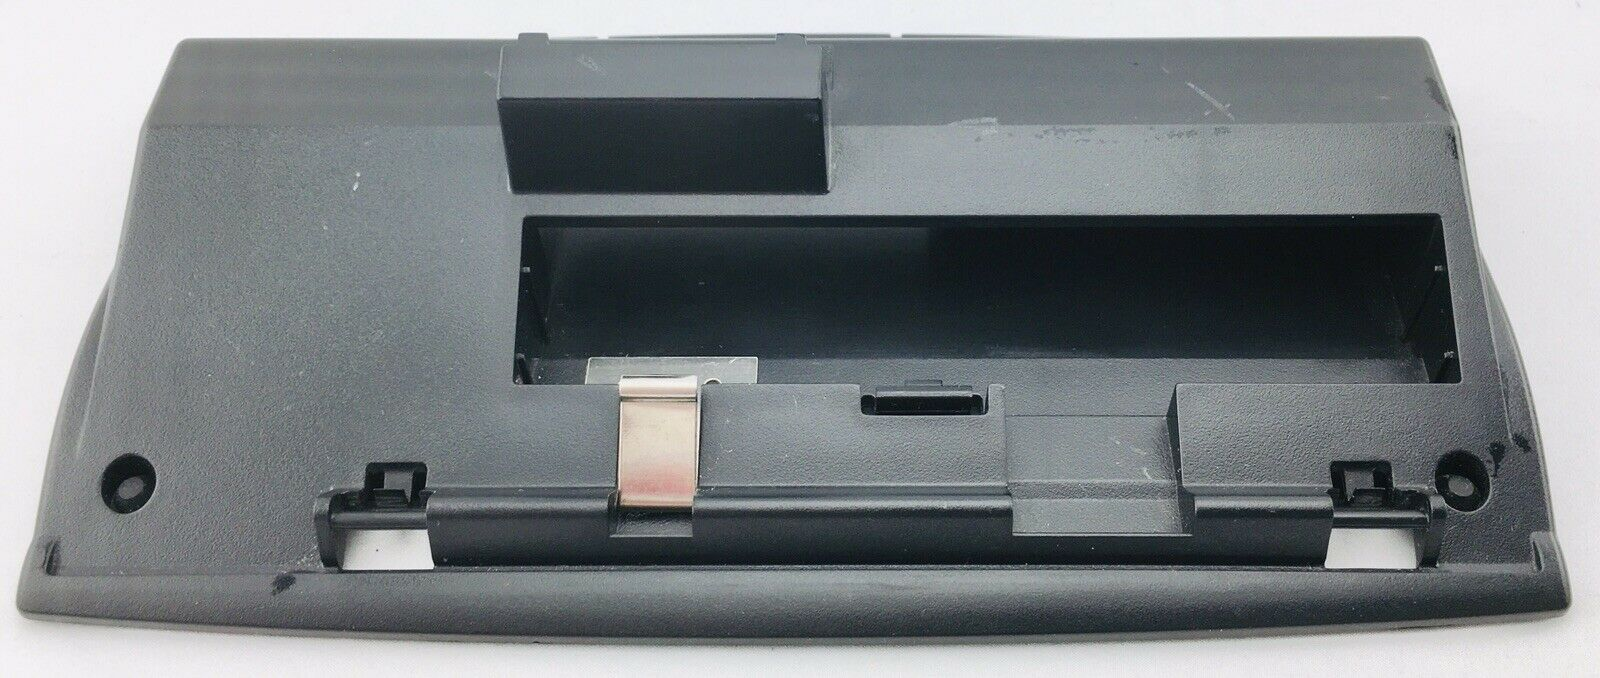 NORTEL M3903, M3904, M3905 STAND BASE